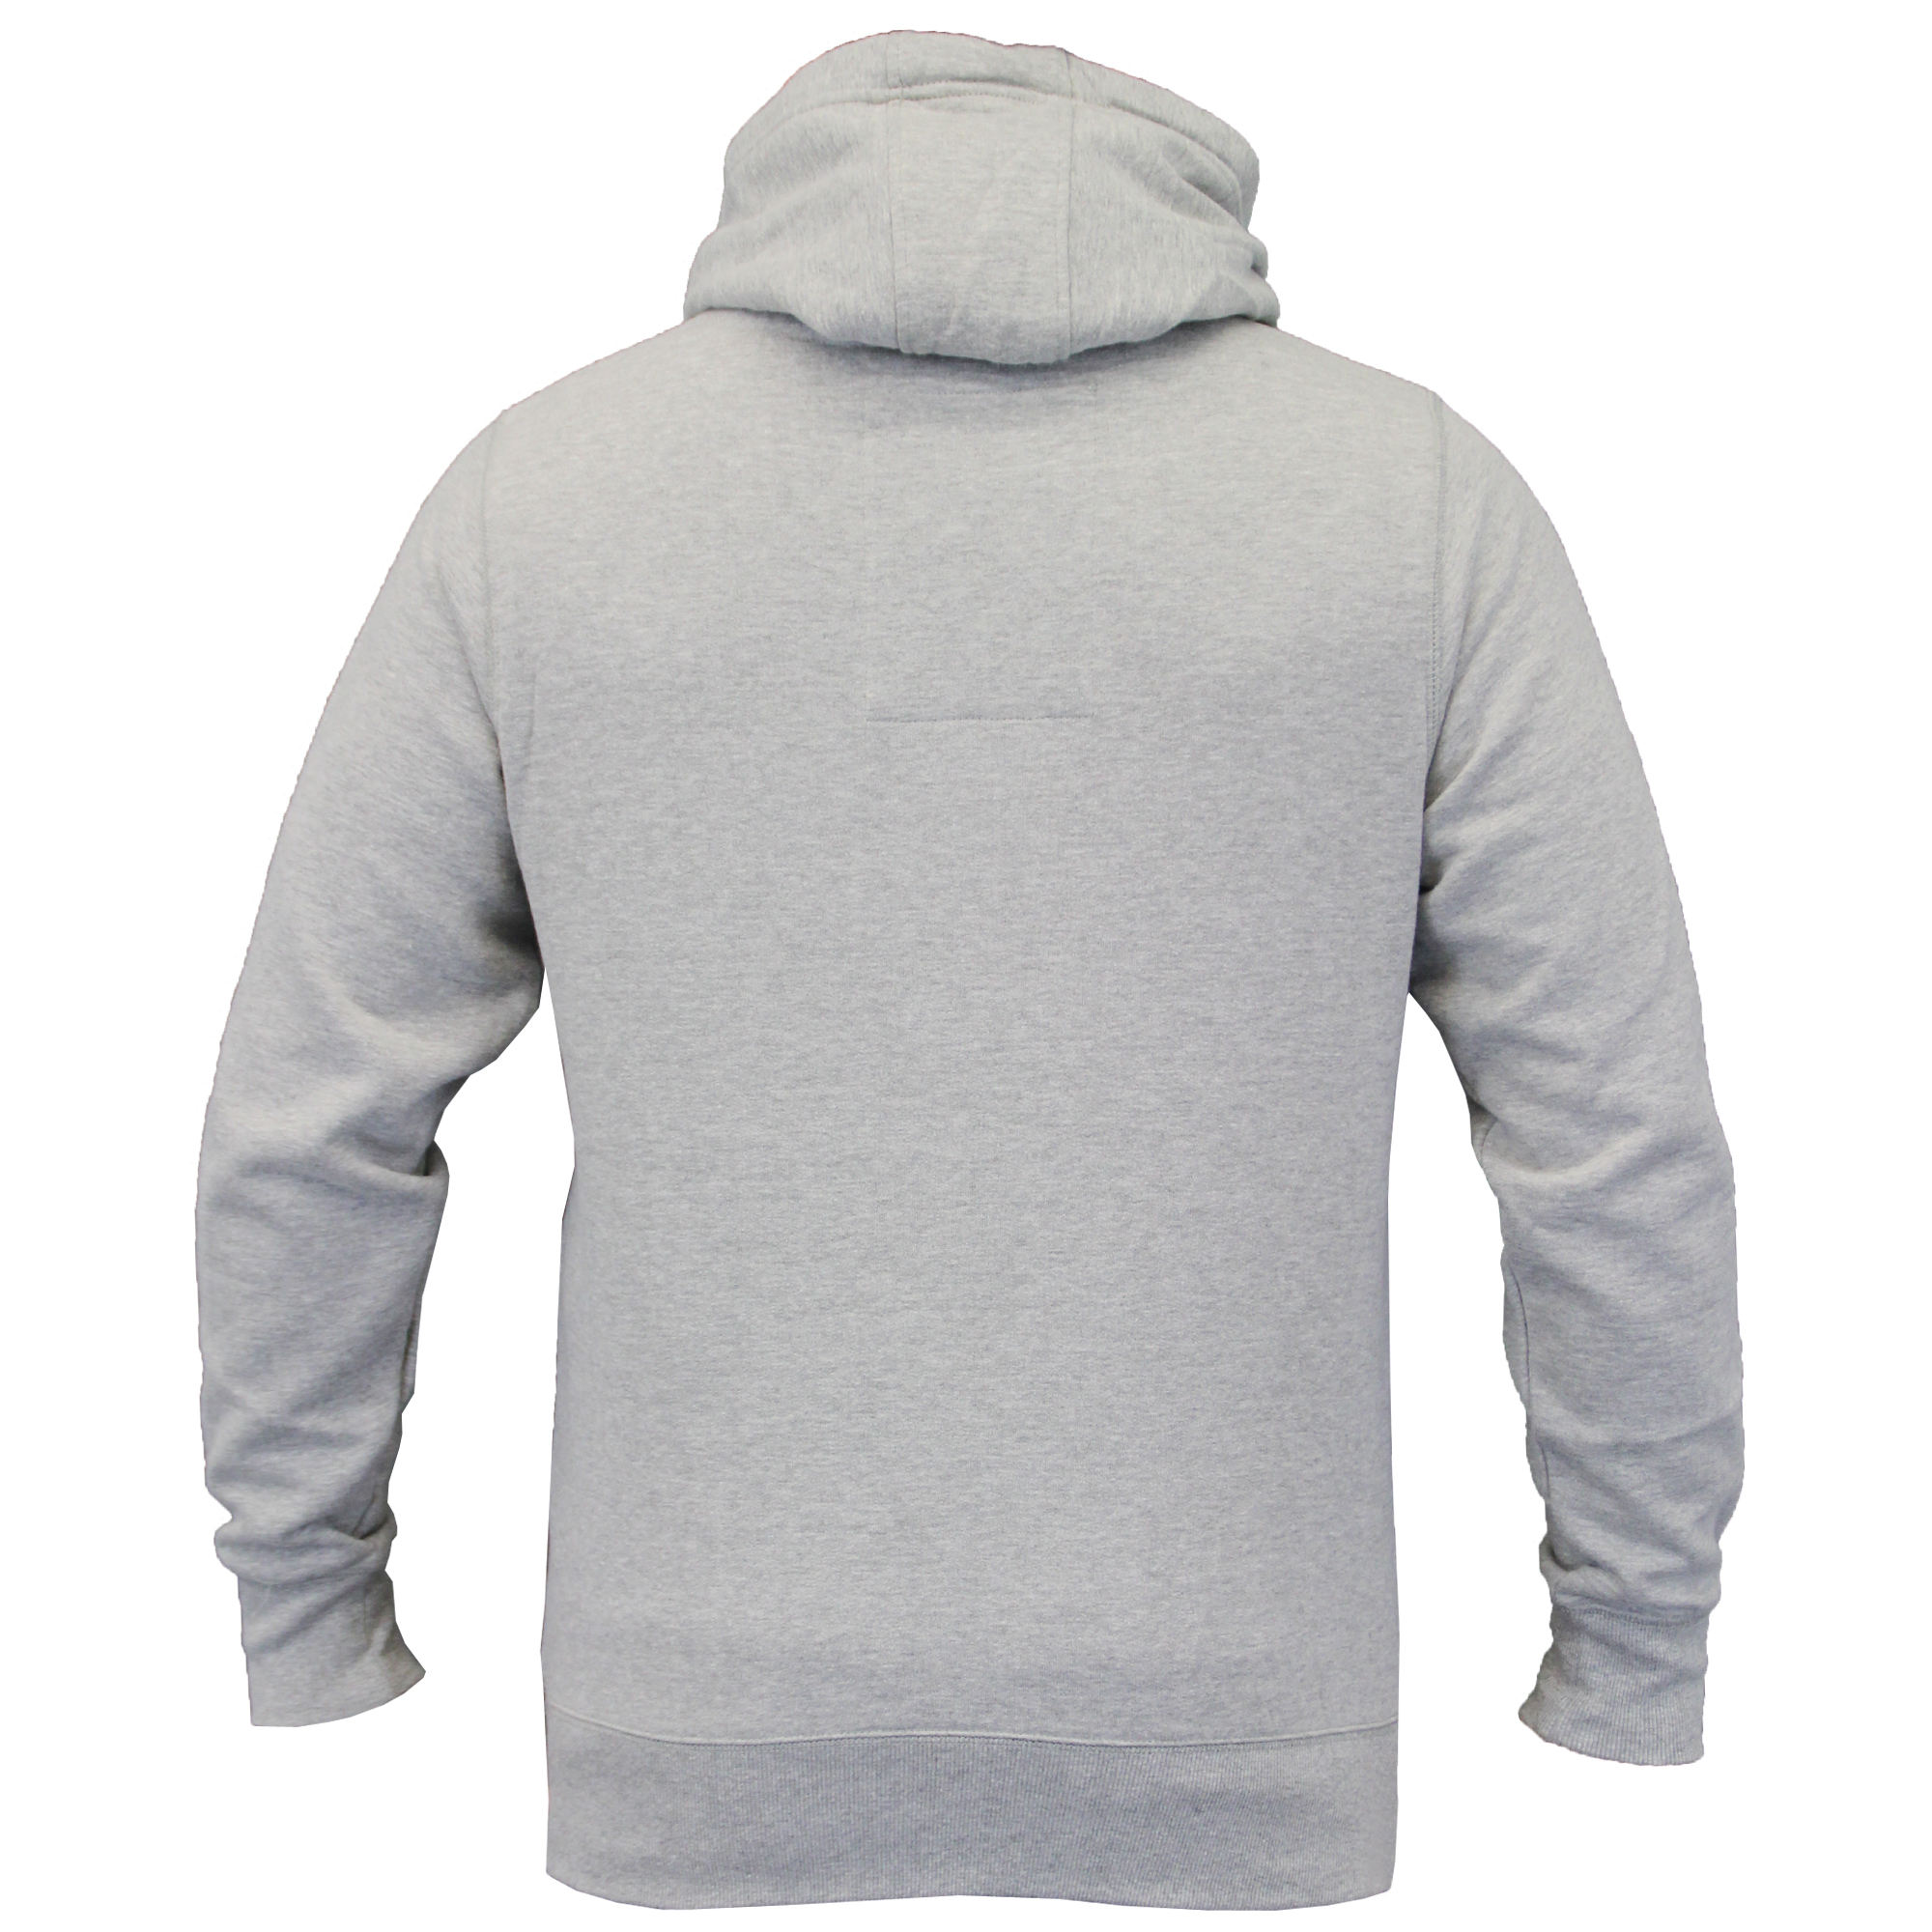 Mens-Hooded-Top-Sweatshirt-By-Tokyo-Laundry-Fleece-Lined thumbnail 15